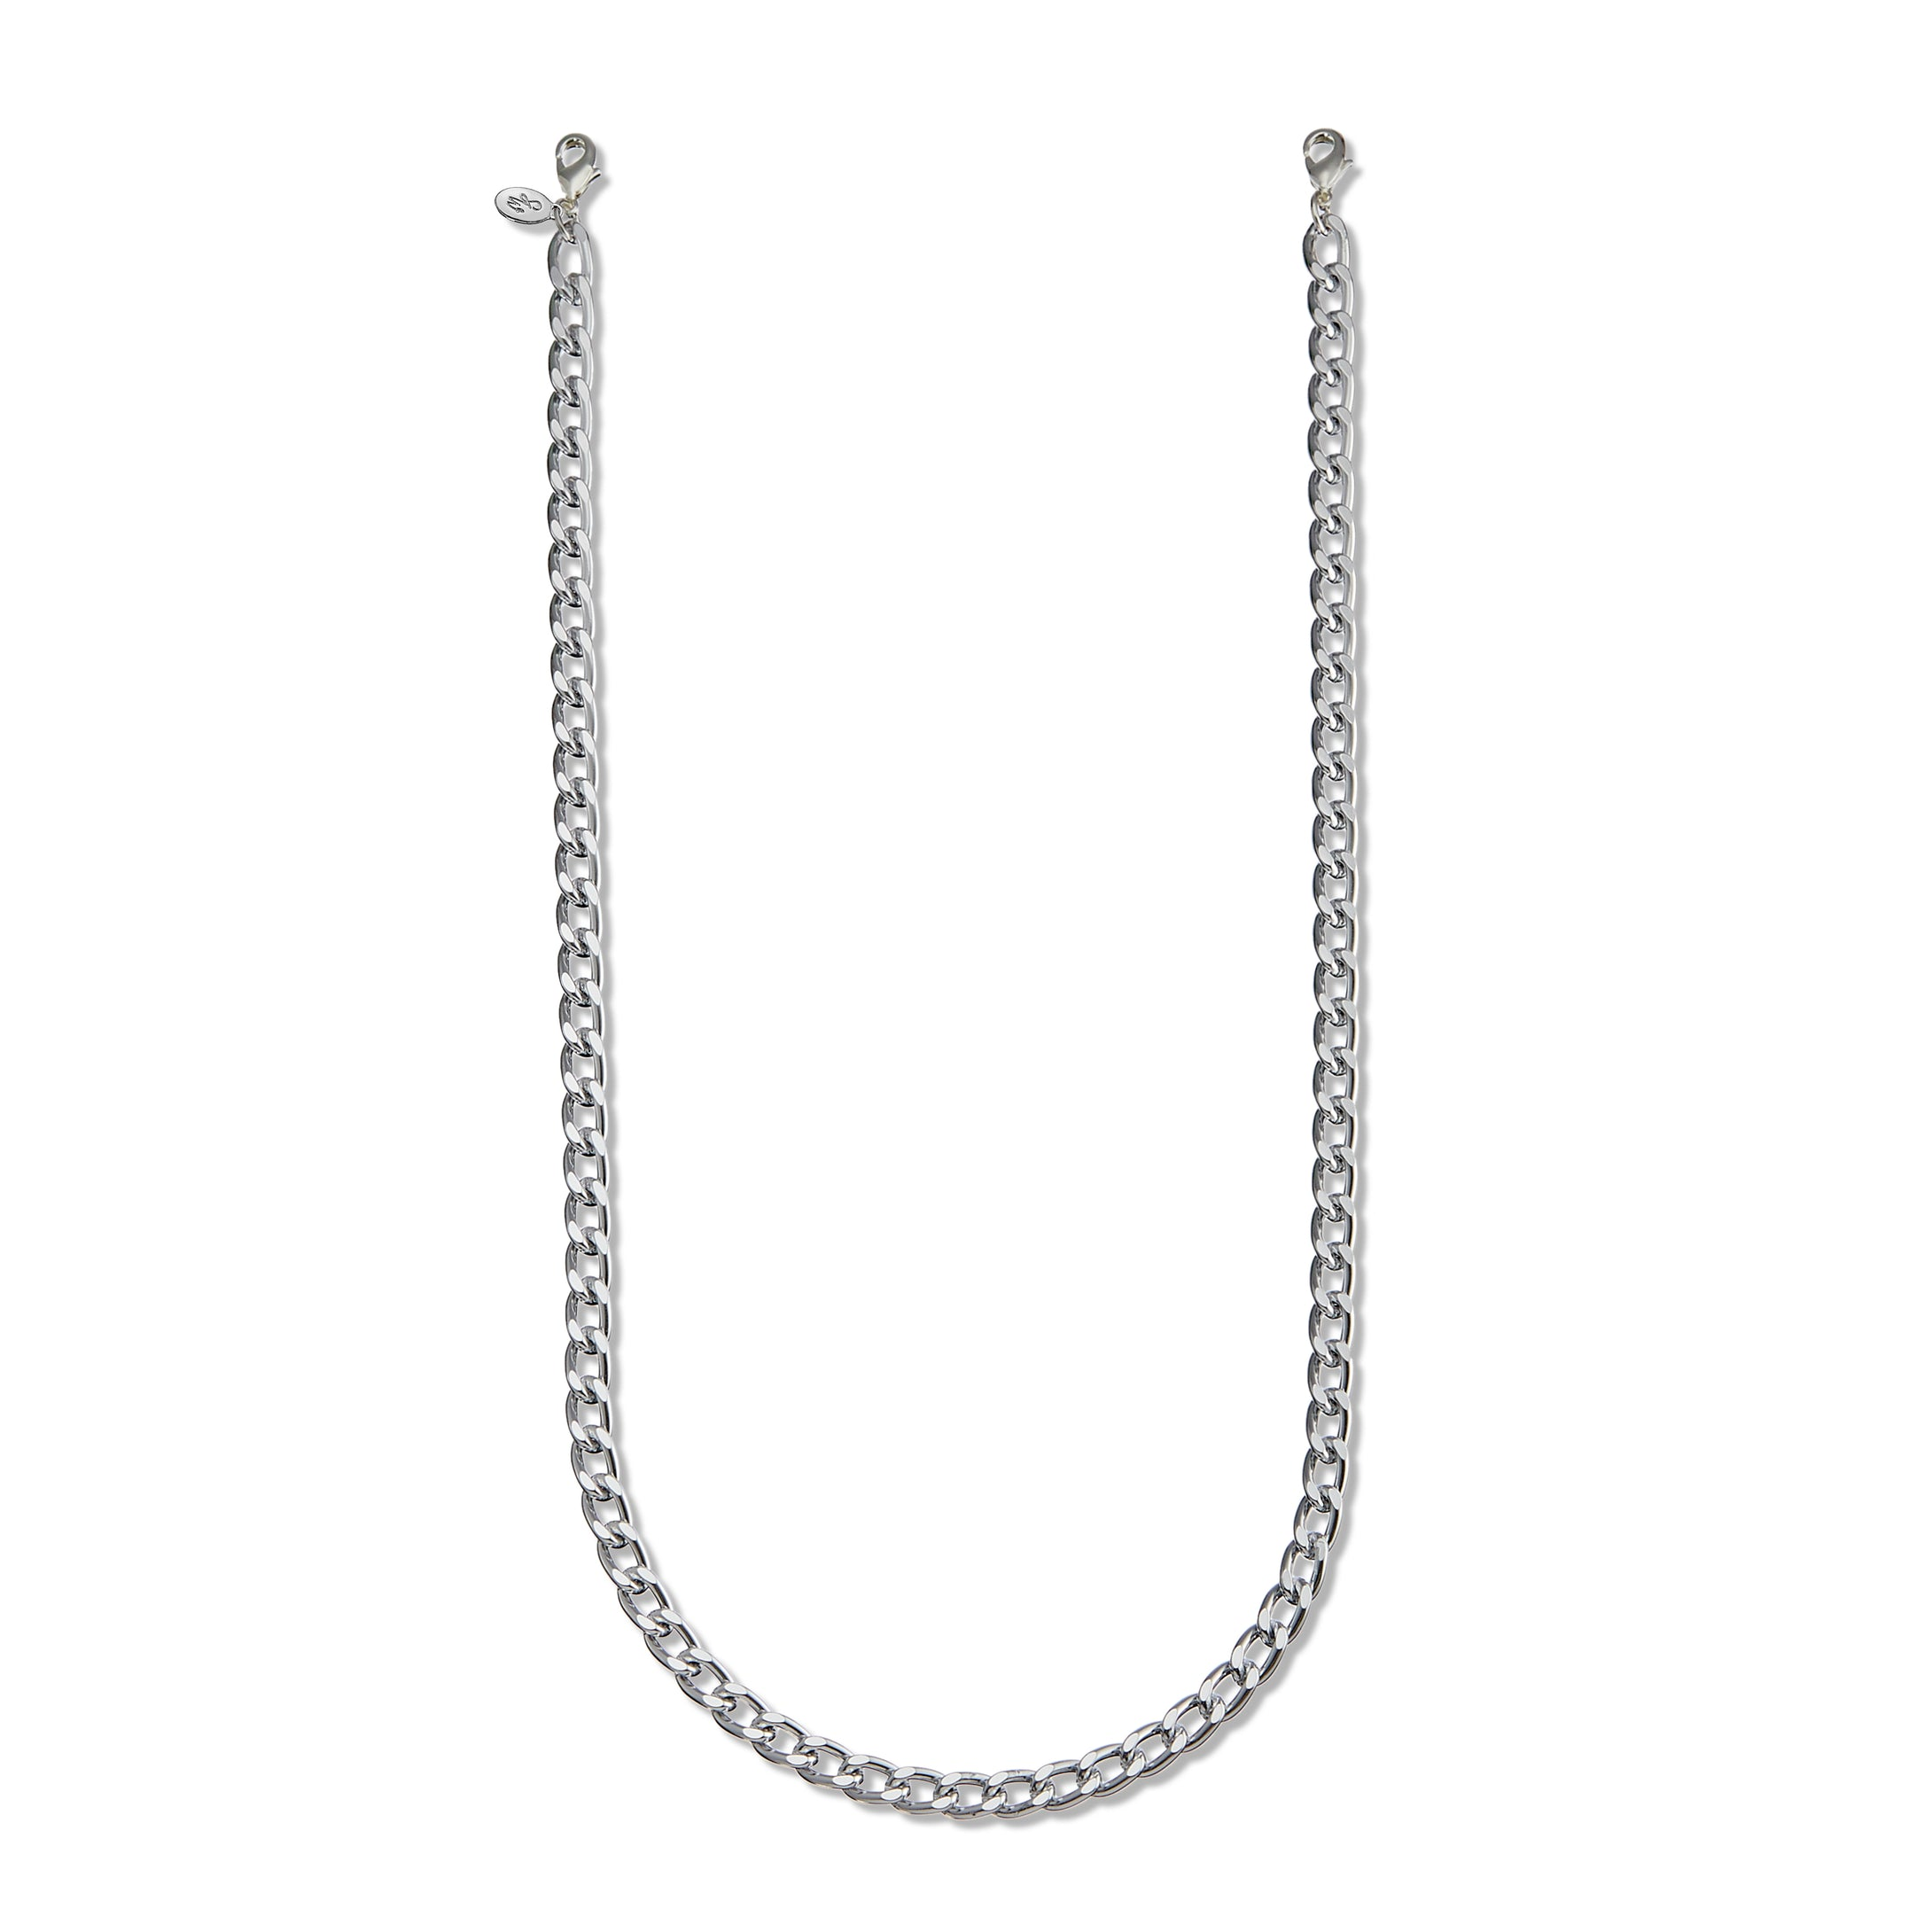 Detachable 7mm Chain in Silver